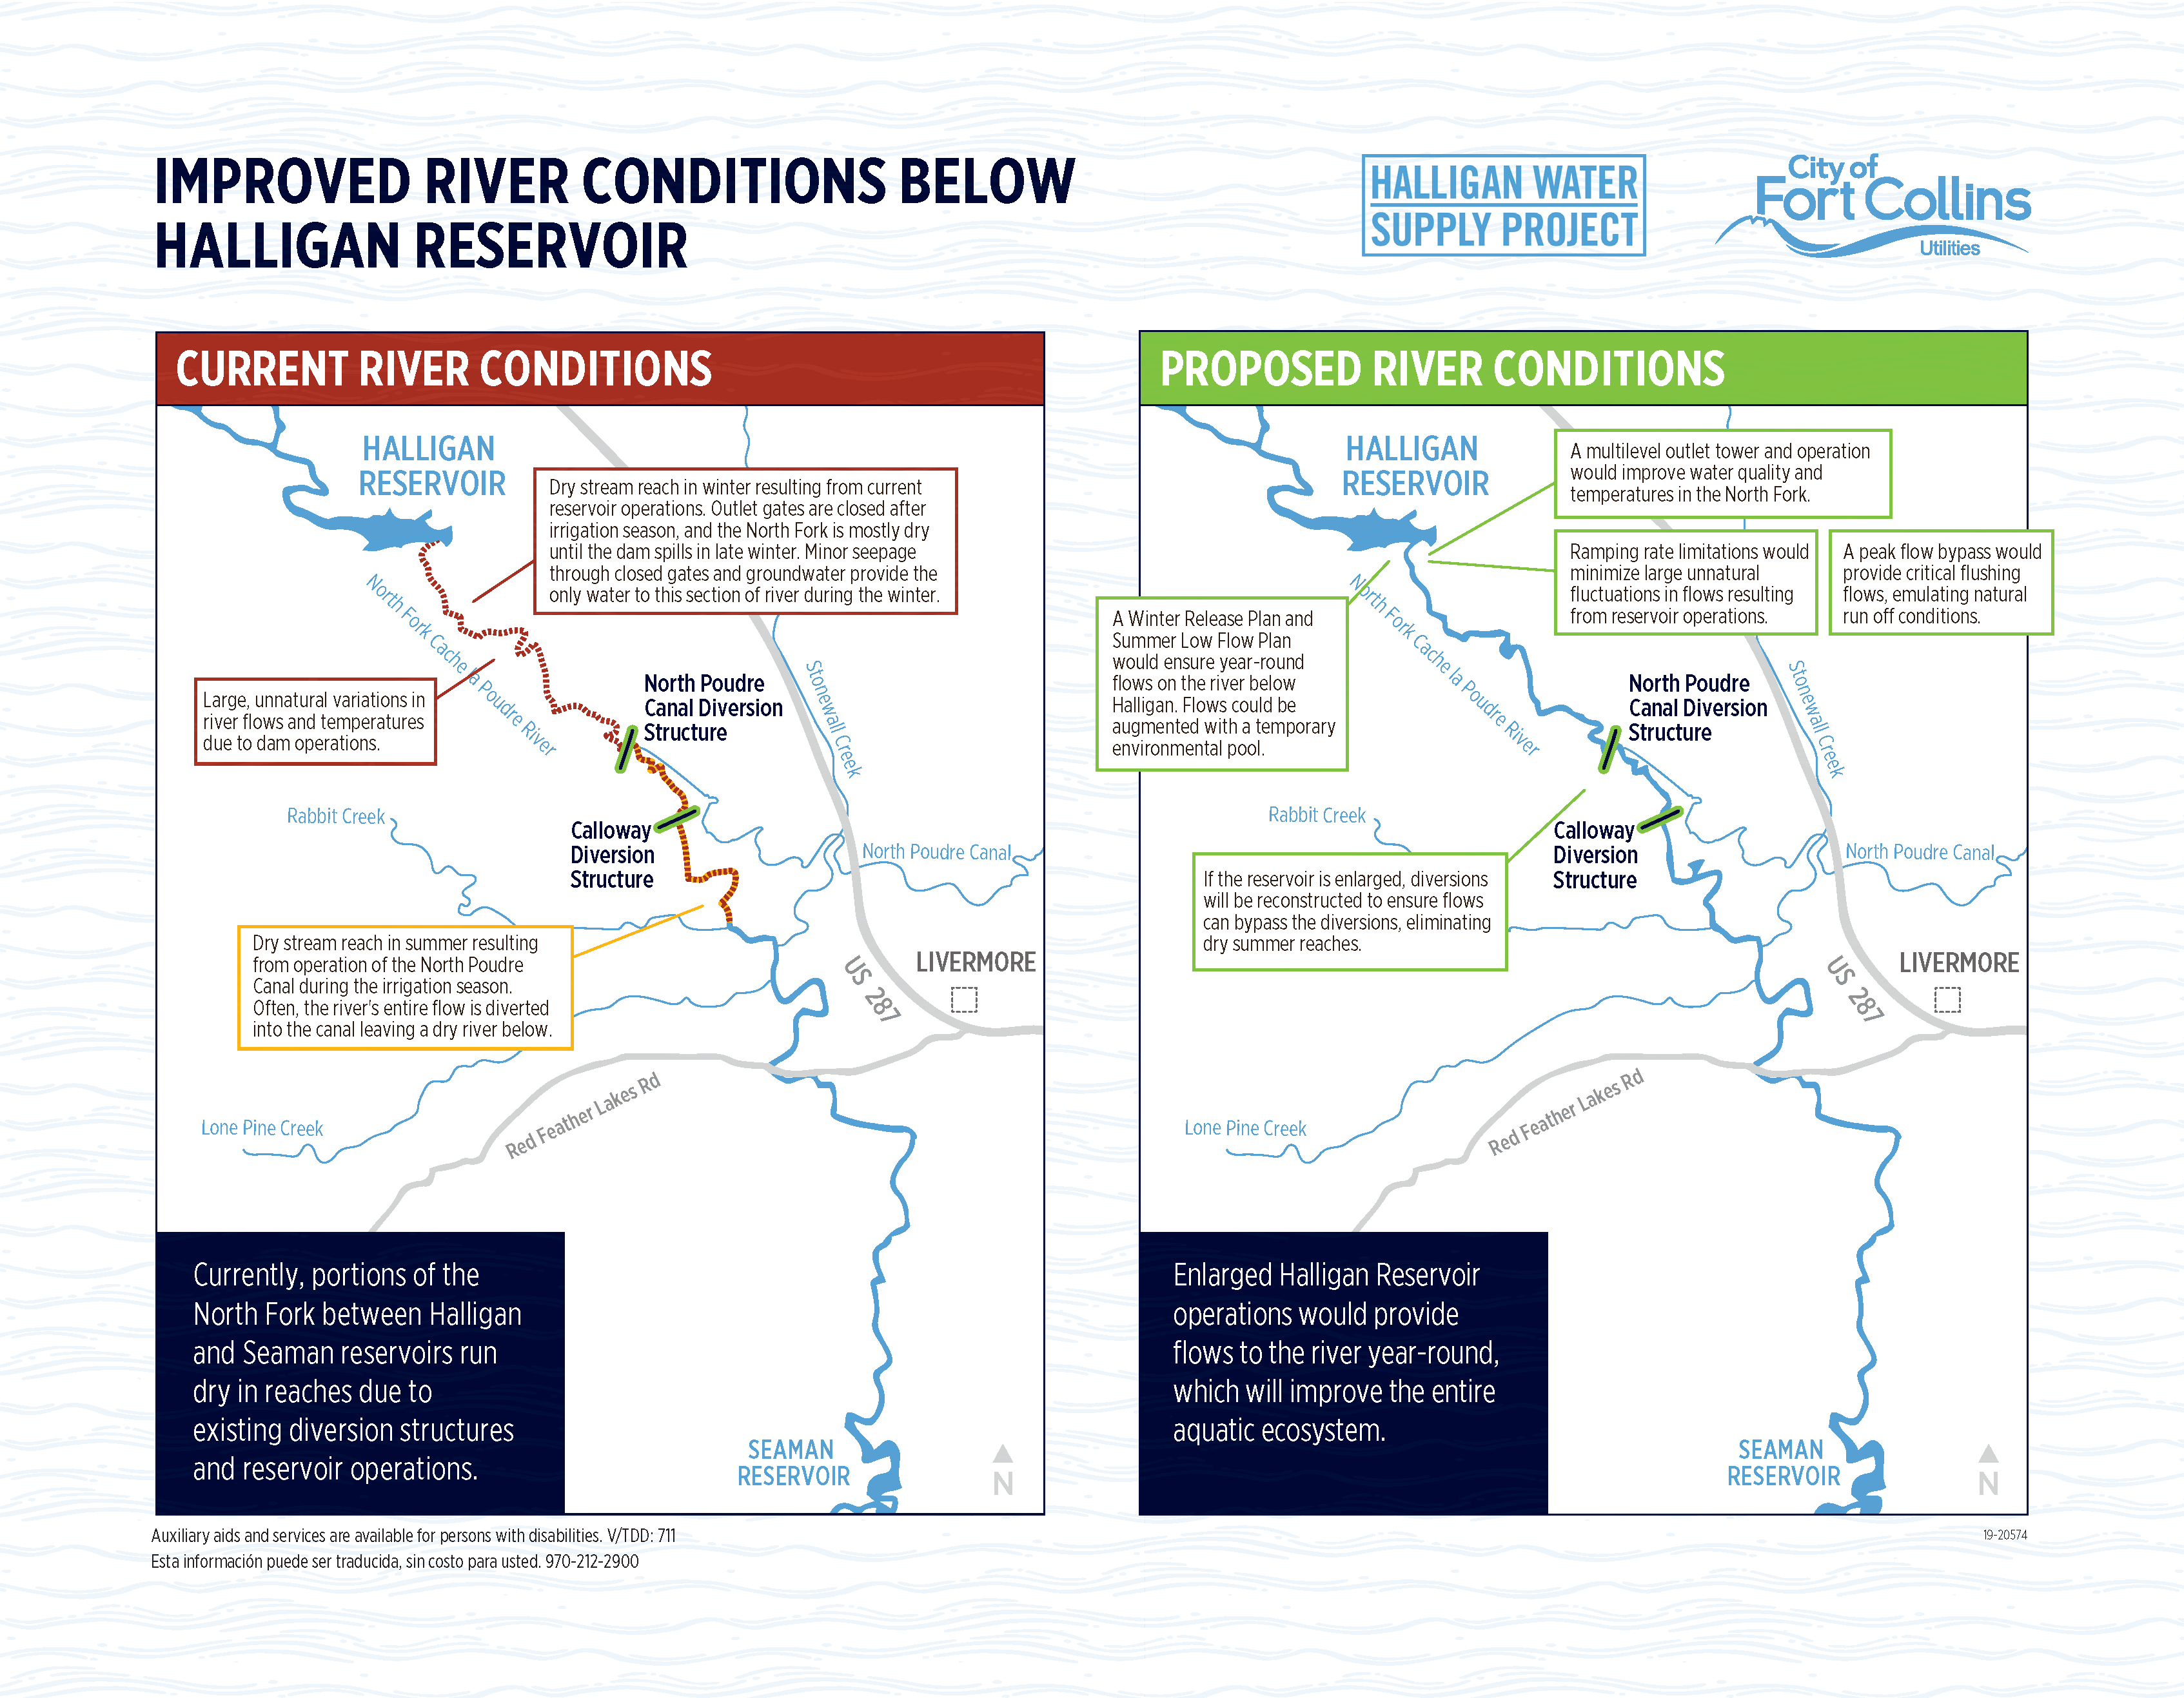 Map of Current and Proposed River Conditions Below Halligan Reservoir